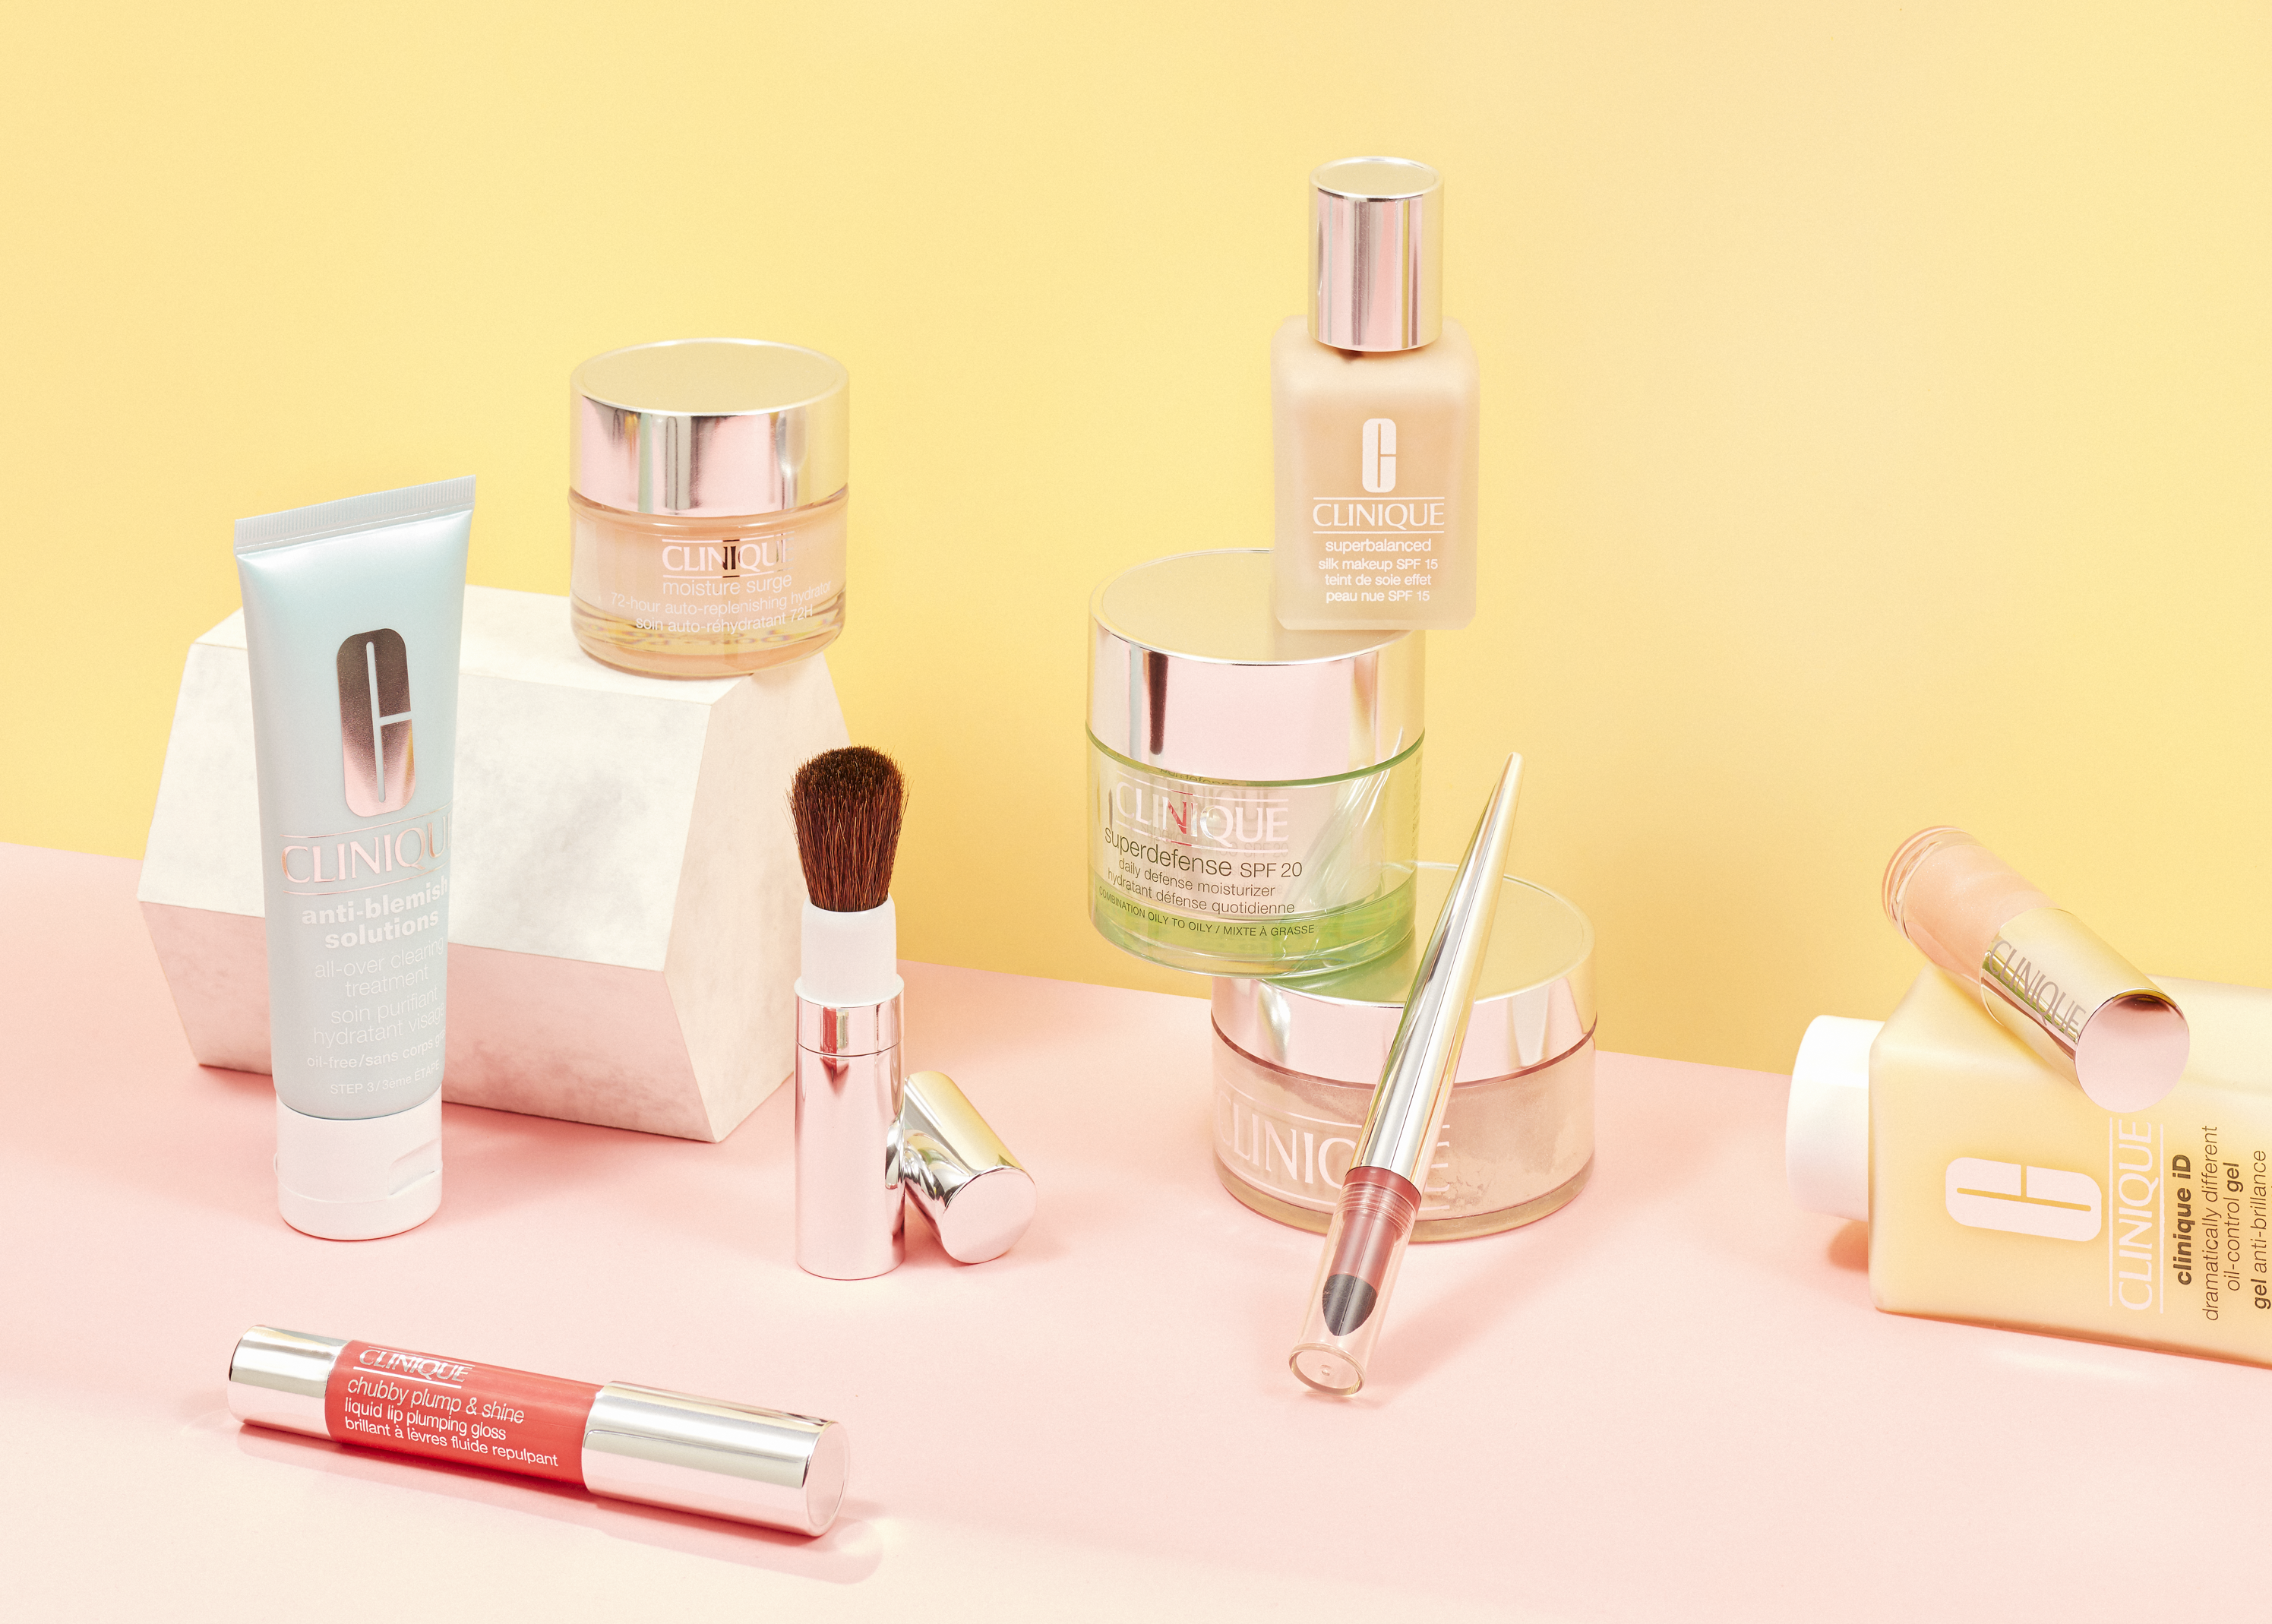 clinique makeup - ZALANDO LANCEERT BEAUTY ASSORTIMENT